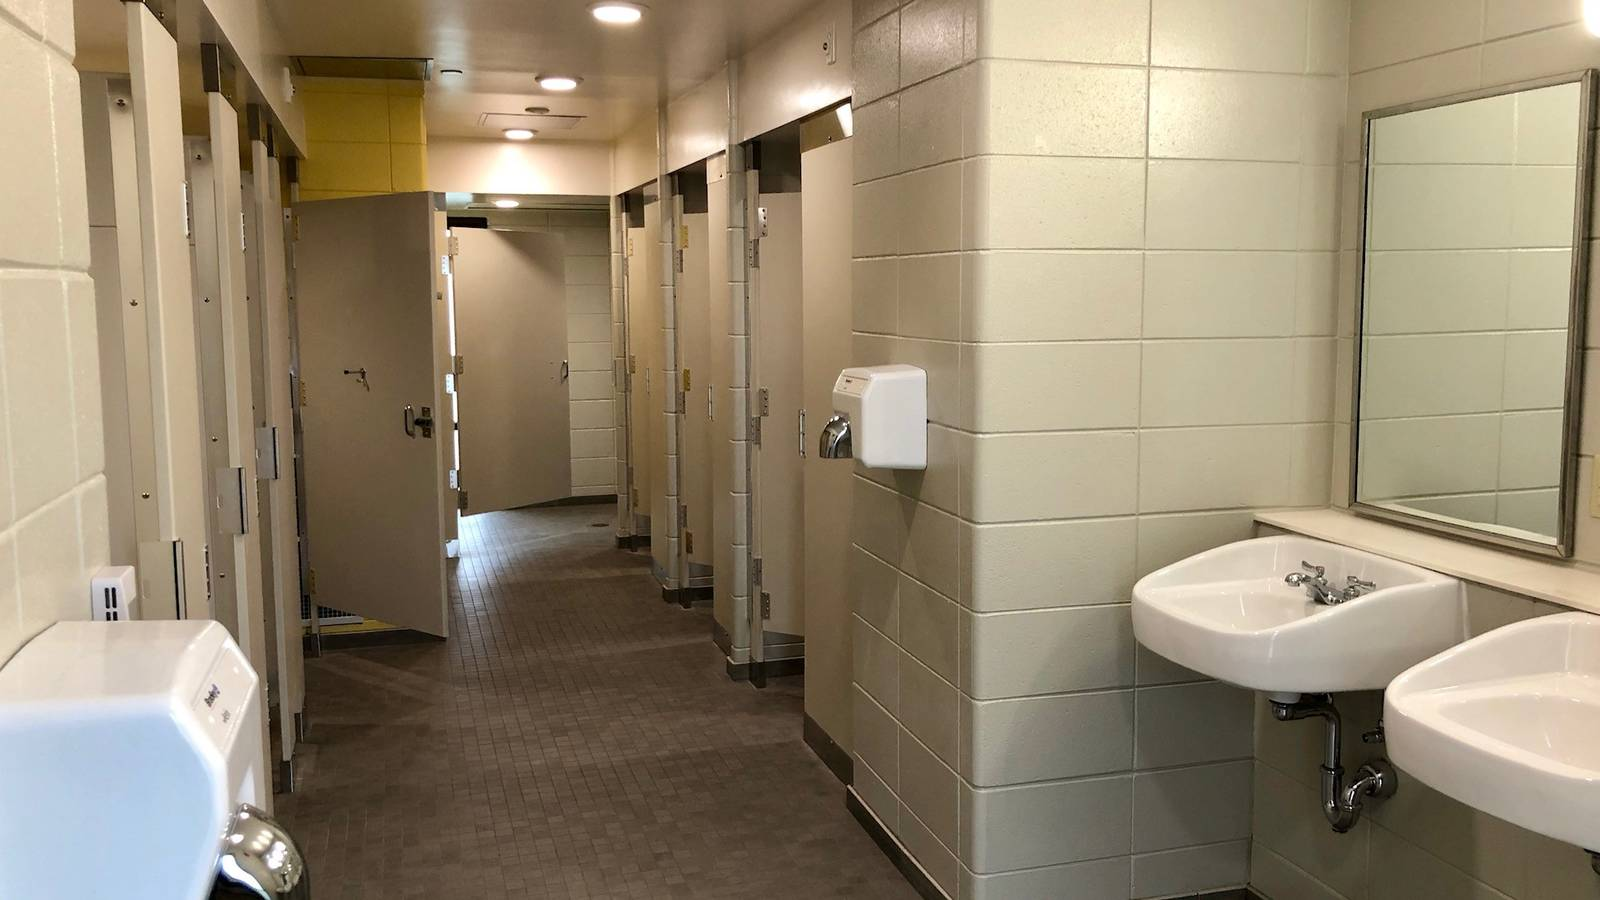 Campers appreciate the newly renovated bathrooms in Karlgaard Towers